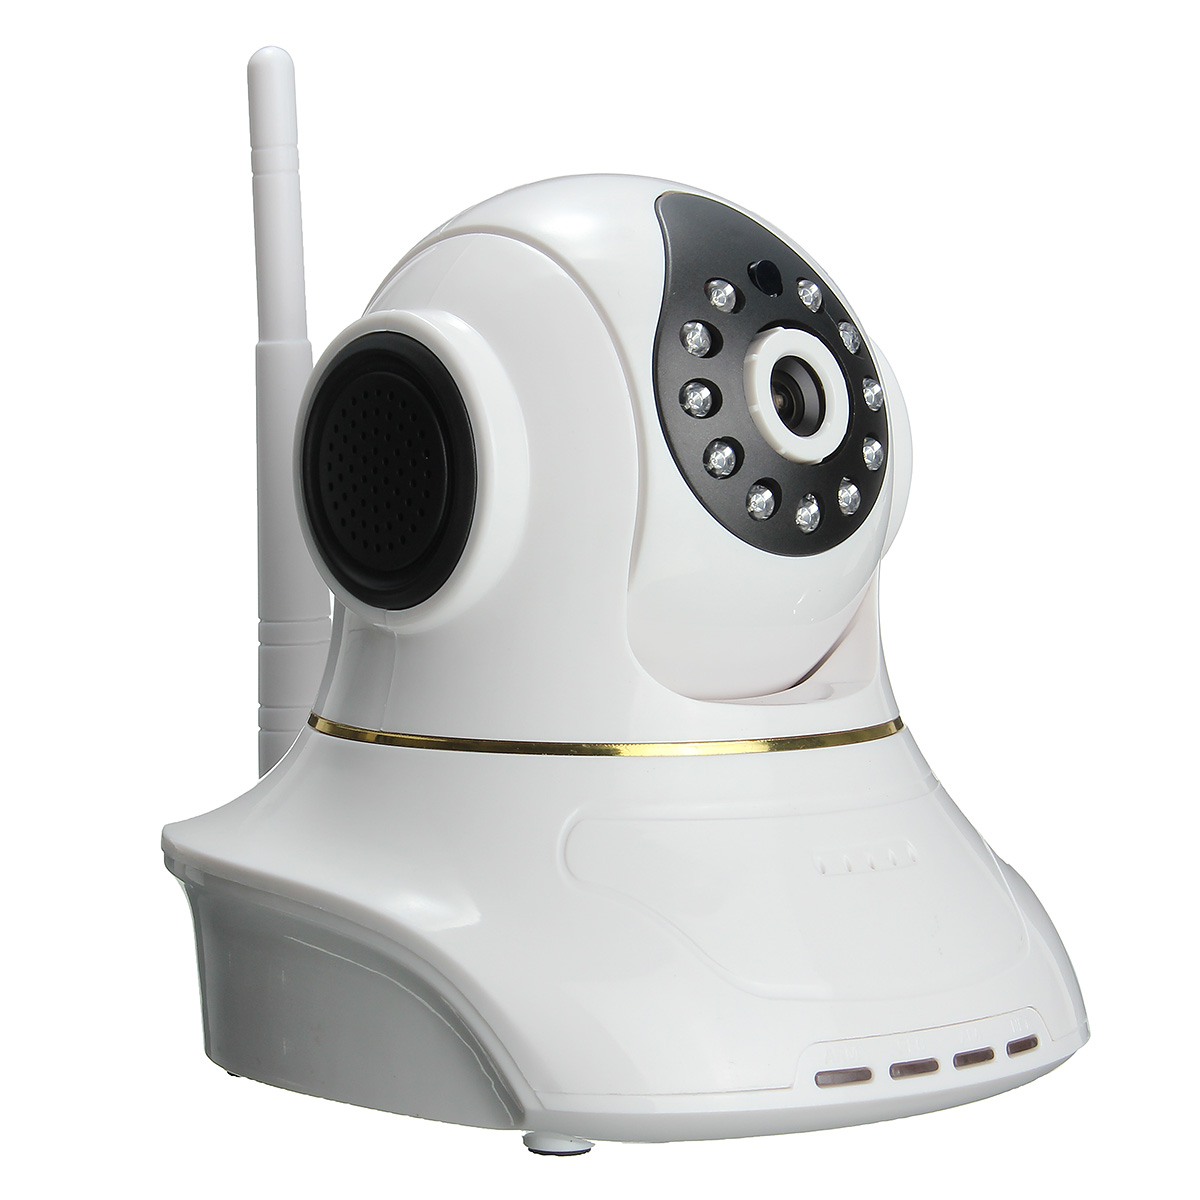 Wireless WiFi 720P HD Network CCTV HOME Security IP Camera U.S. Regulations HOT wireless wifi